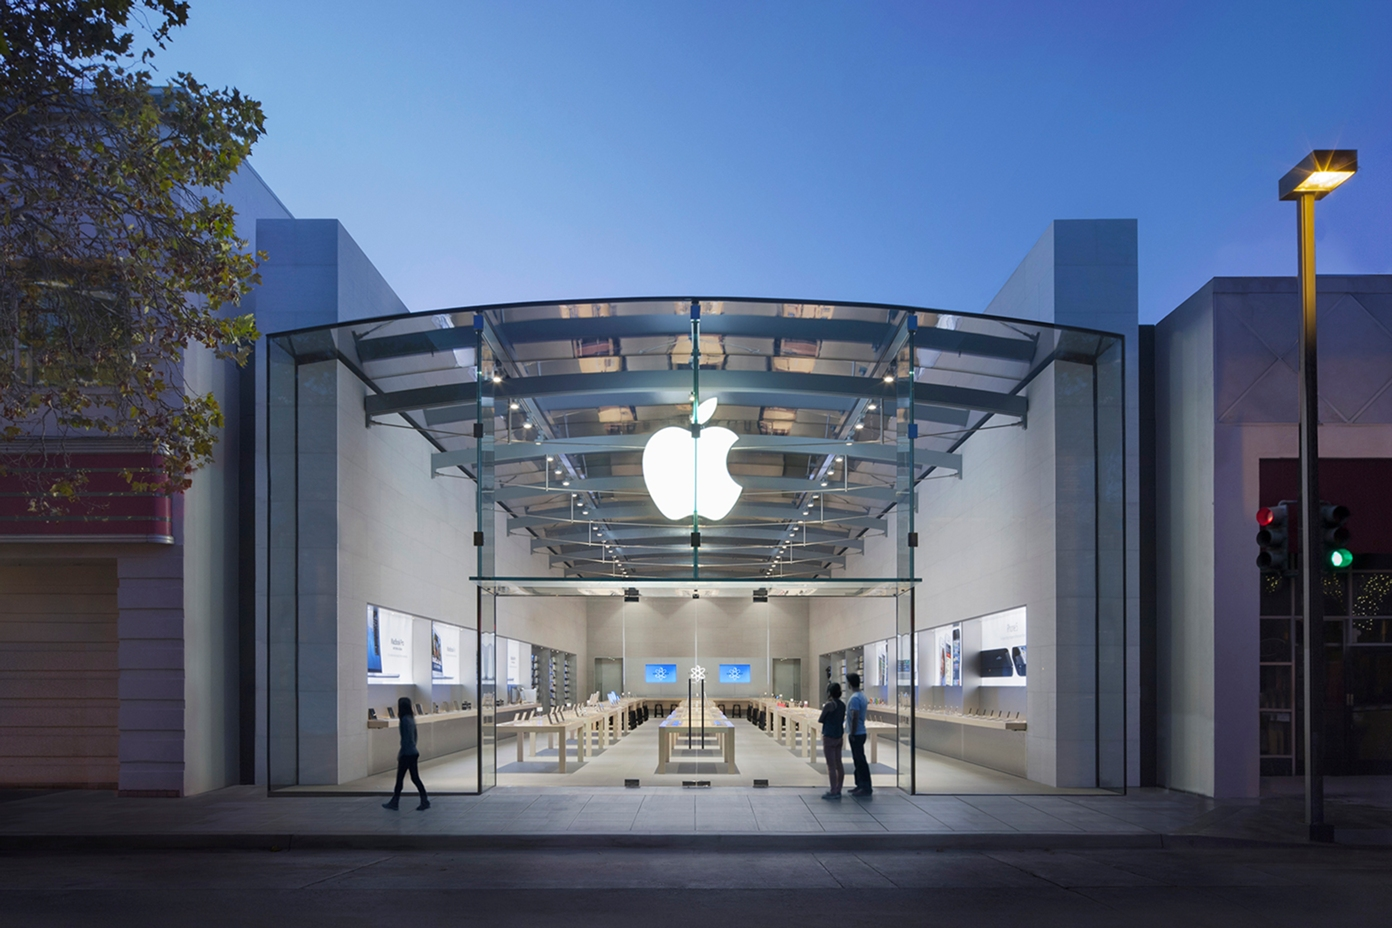 Apple is opening brand new retail stores in Seattle and Palo